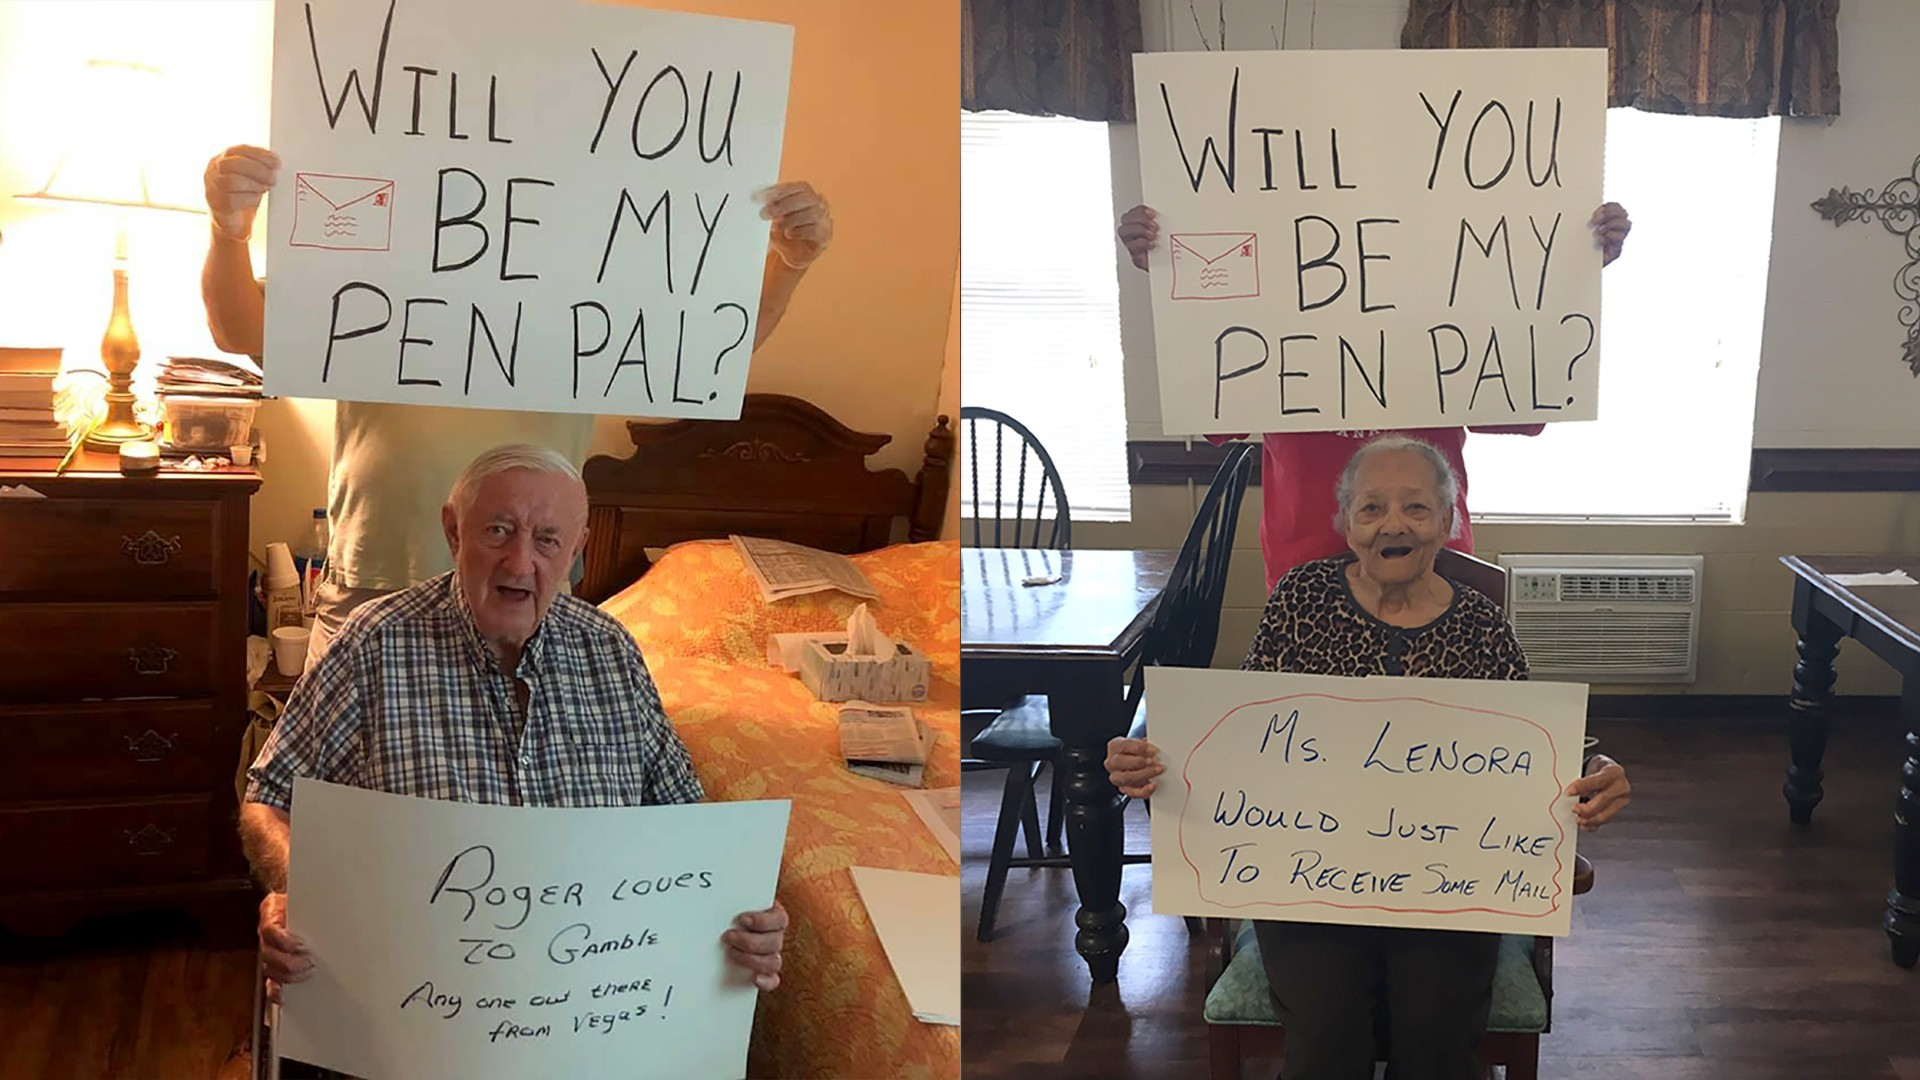 Residents at an assisted living facility are looking for pen pals during this time of isolation. (Victorian Senior Care)